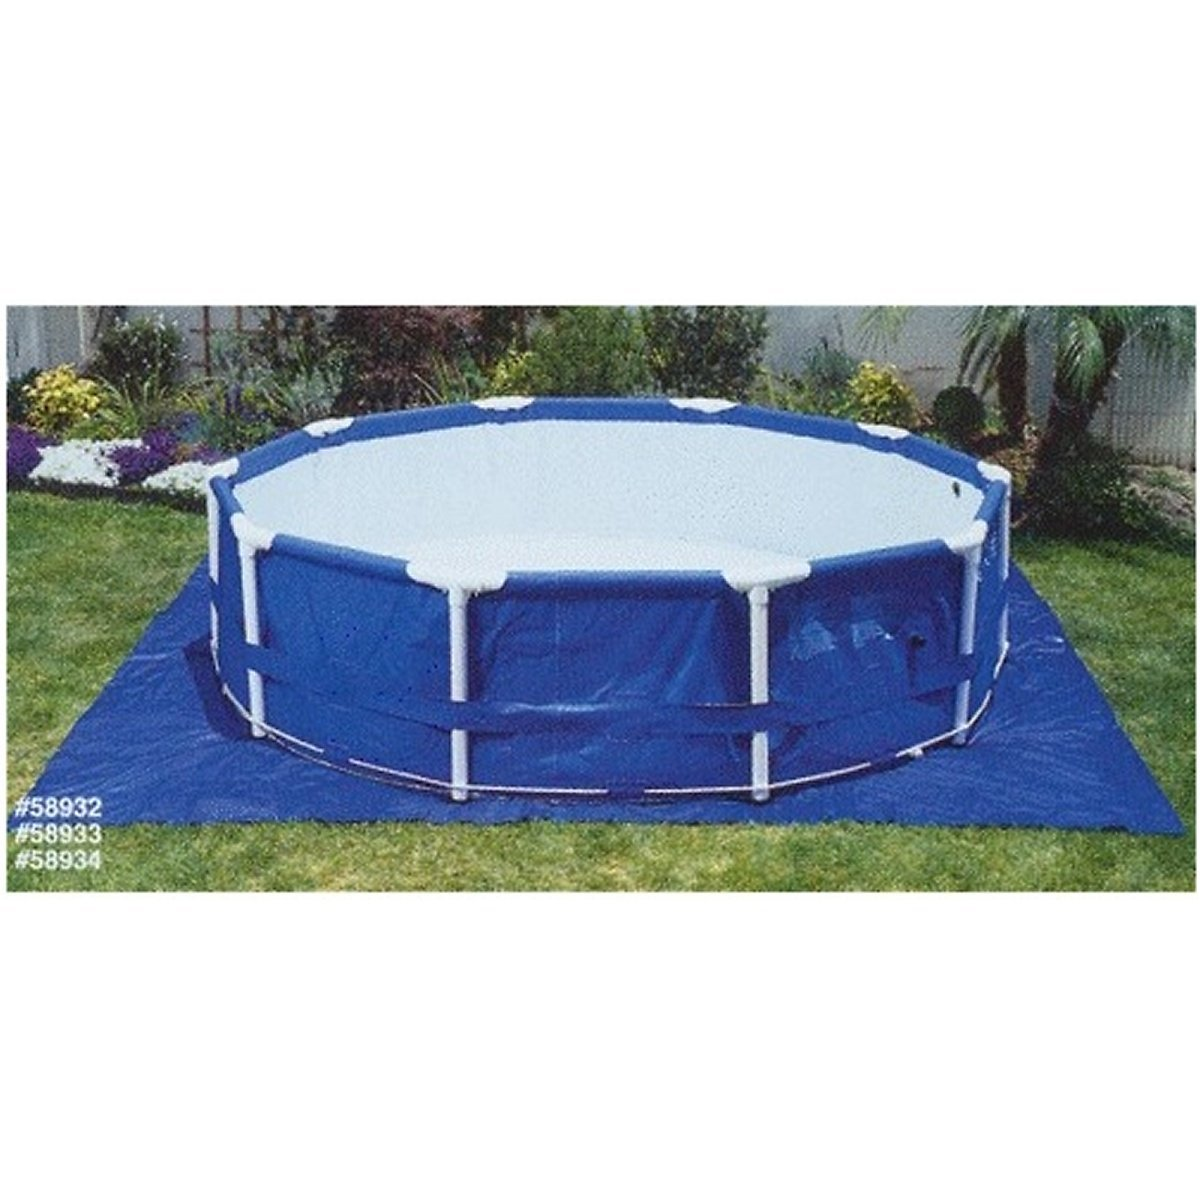 15.5 ft Square Pool Ground Cloth